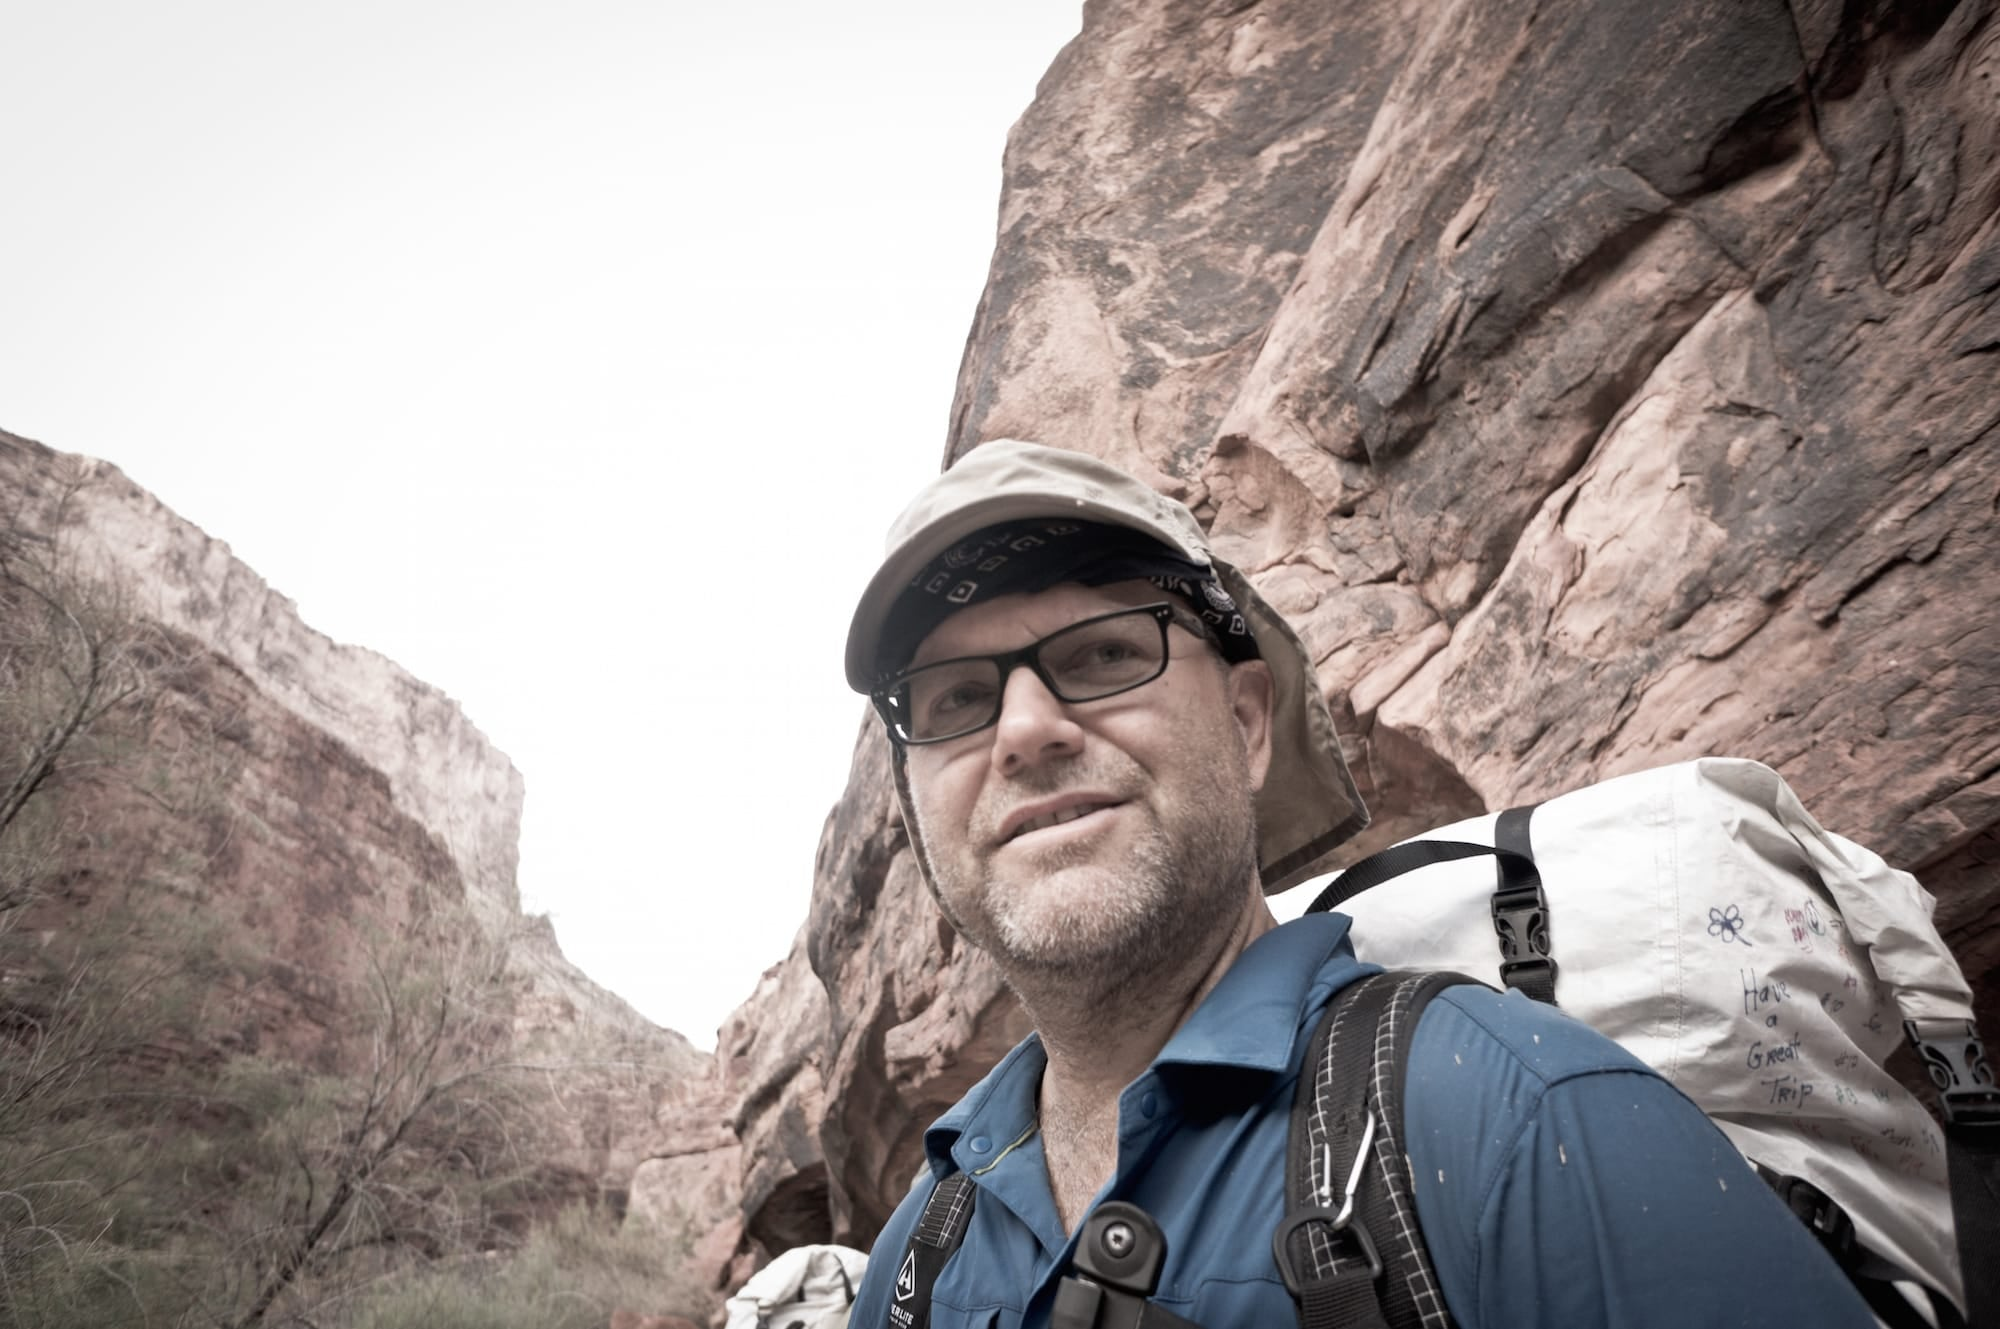 Adventurer Rich Rudow completed a 700-mile thru hike of the grand canyon.